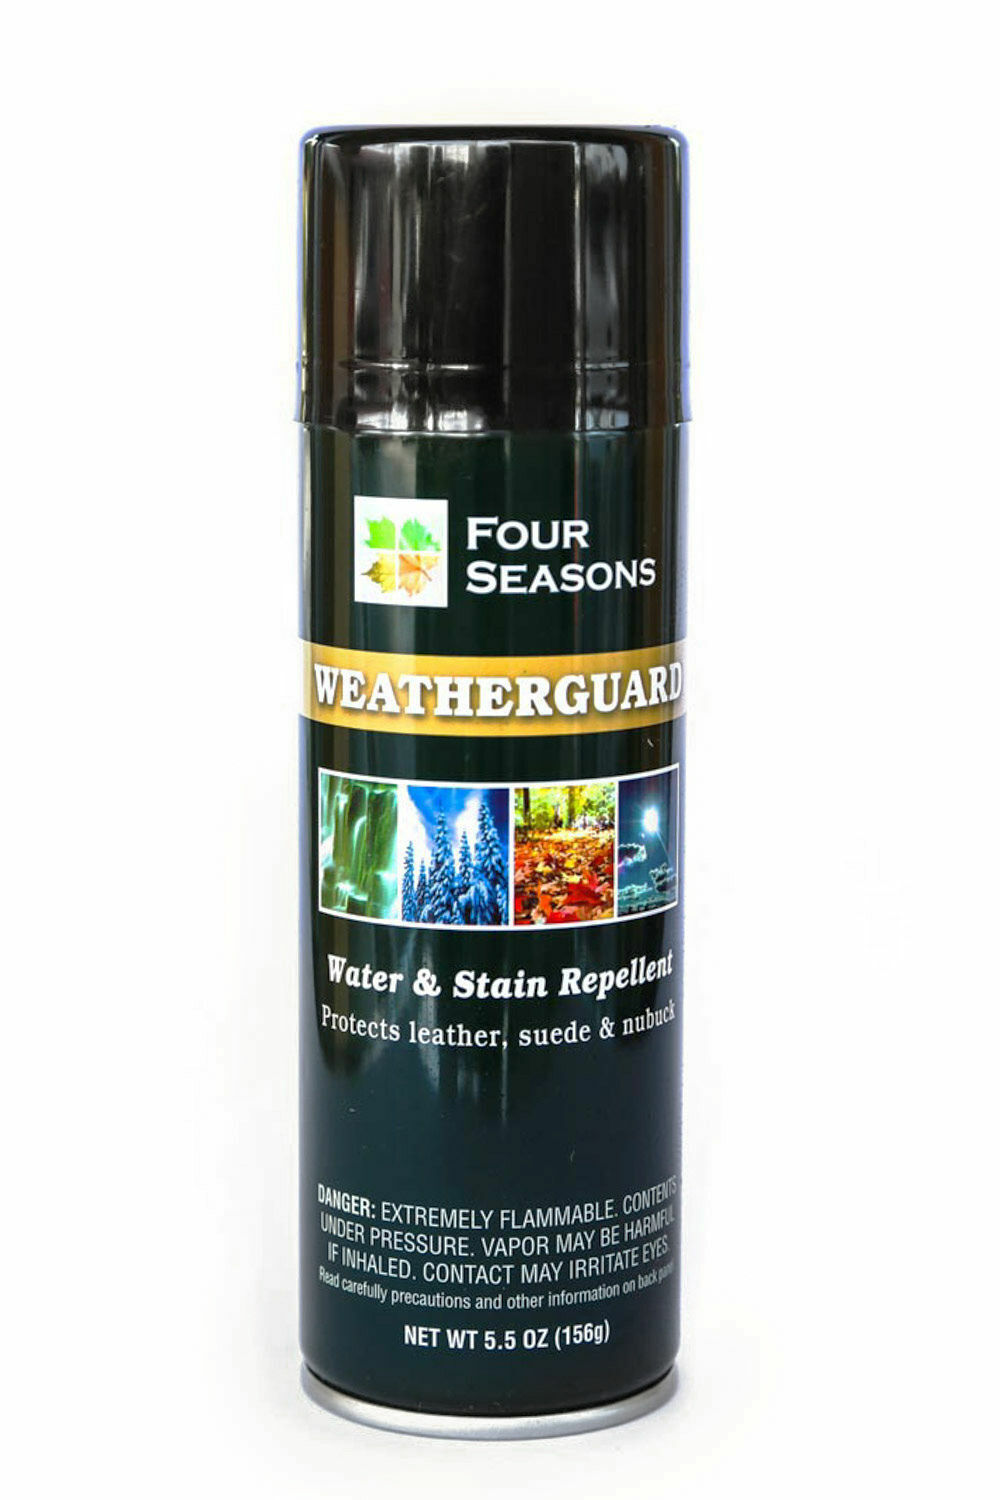 Four Seasons Weatherguard Leather, Suede/Nubuck Water & Stain Repellent 5.5 oz Clothing & Shoe Care